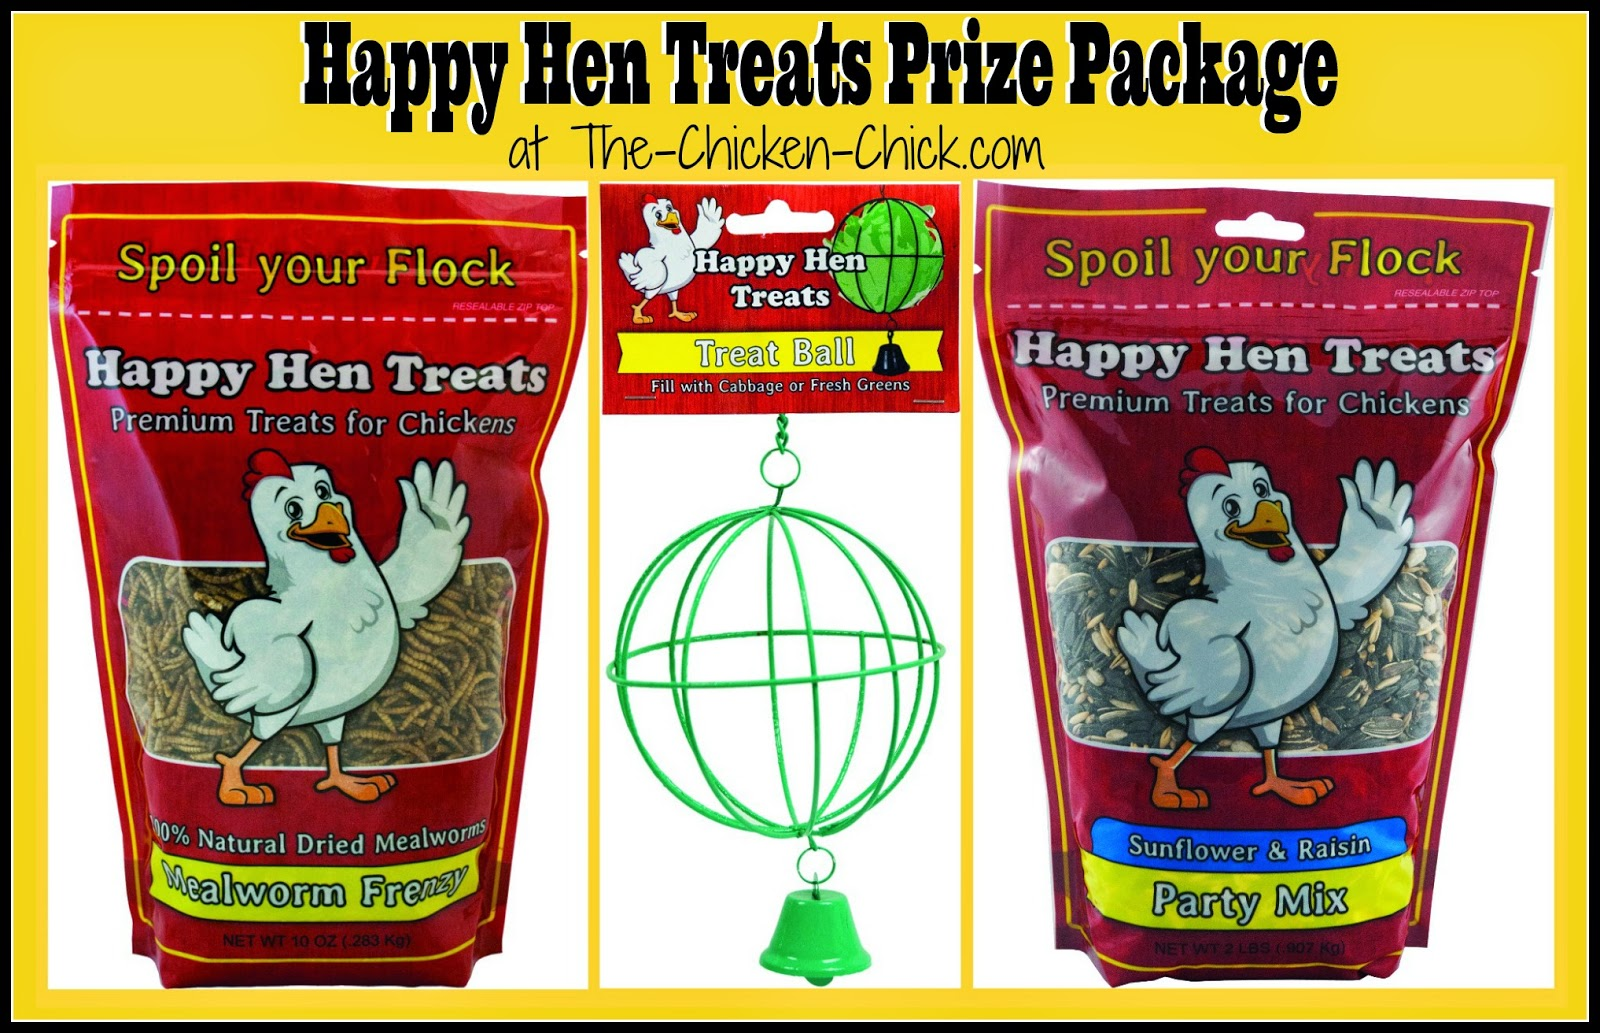 Happy Hen Treats Prize Package GIVEAWAY at www.The-Chicken-Chick.com